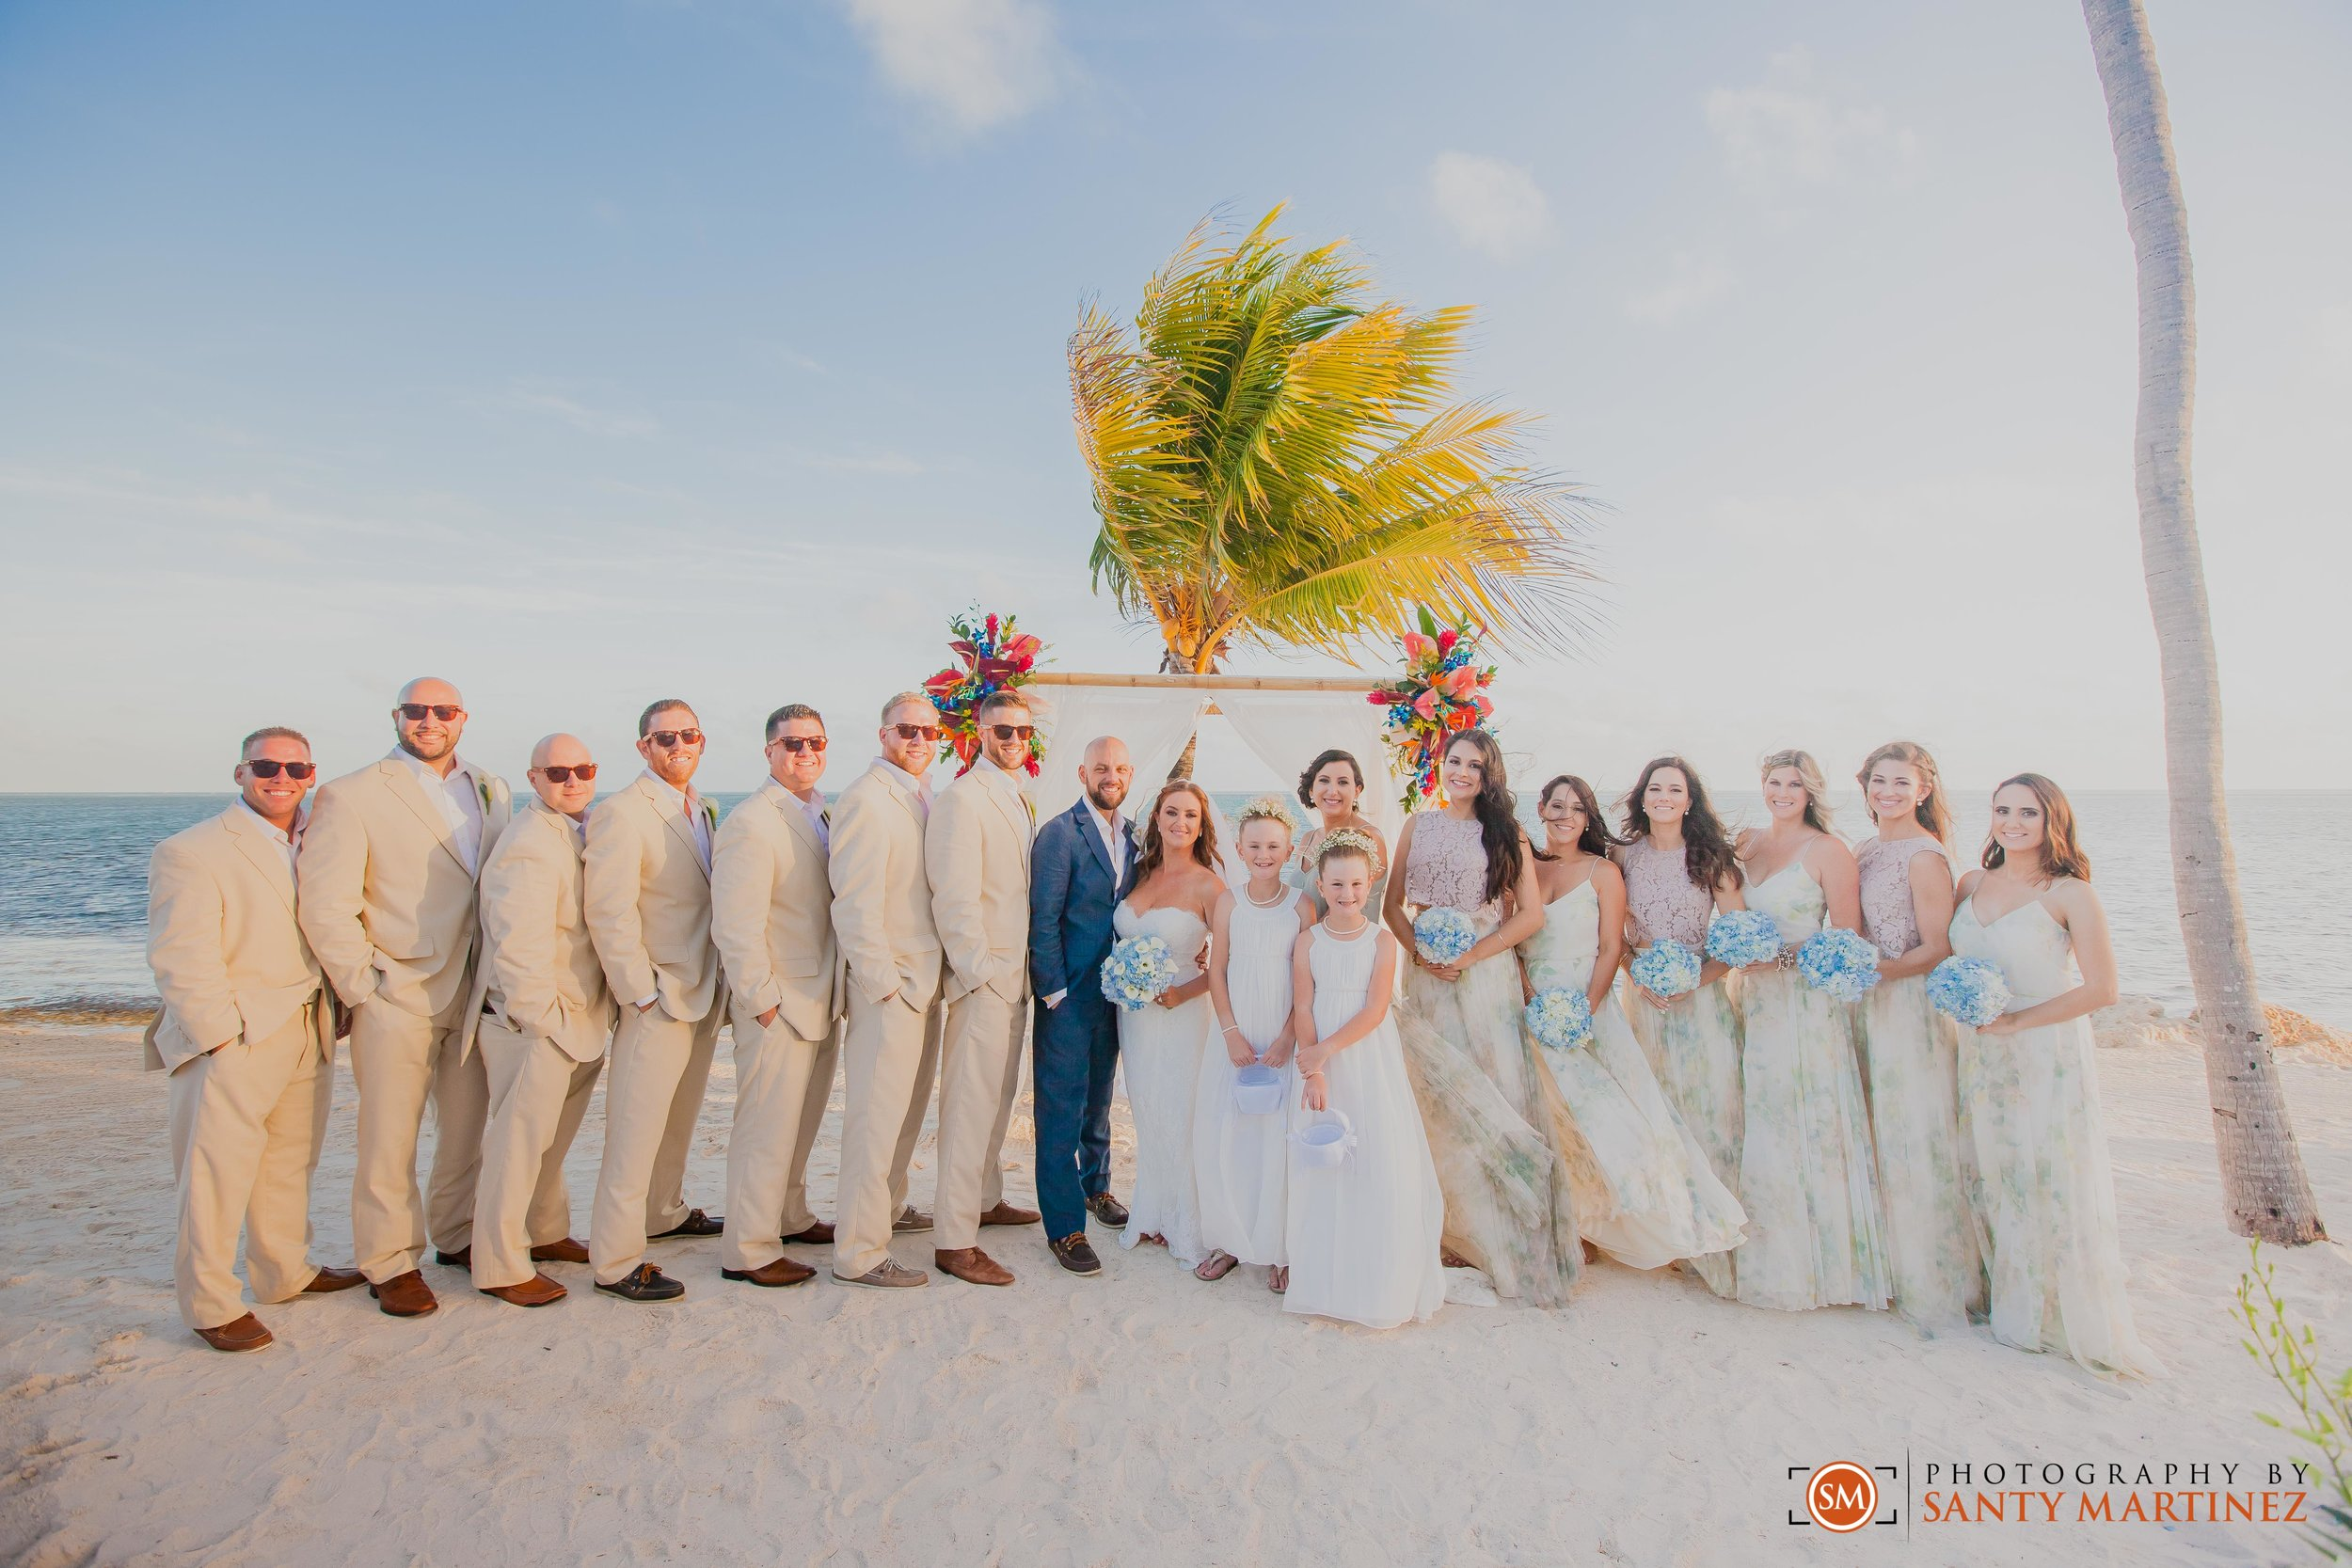 Postcard Inn Islamorada Wedding - Photography by Santy Martinez-0186.jpg